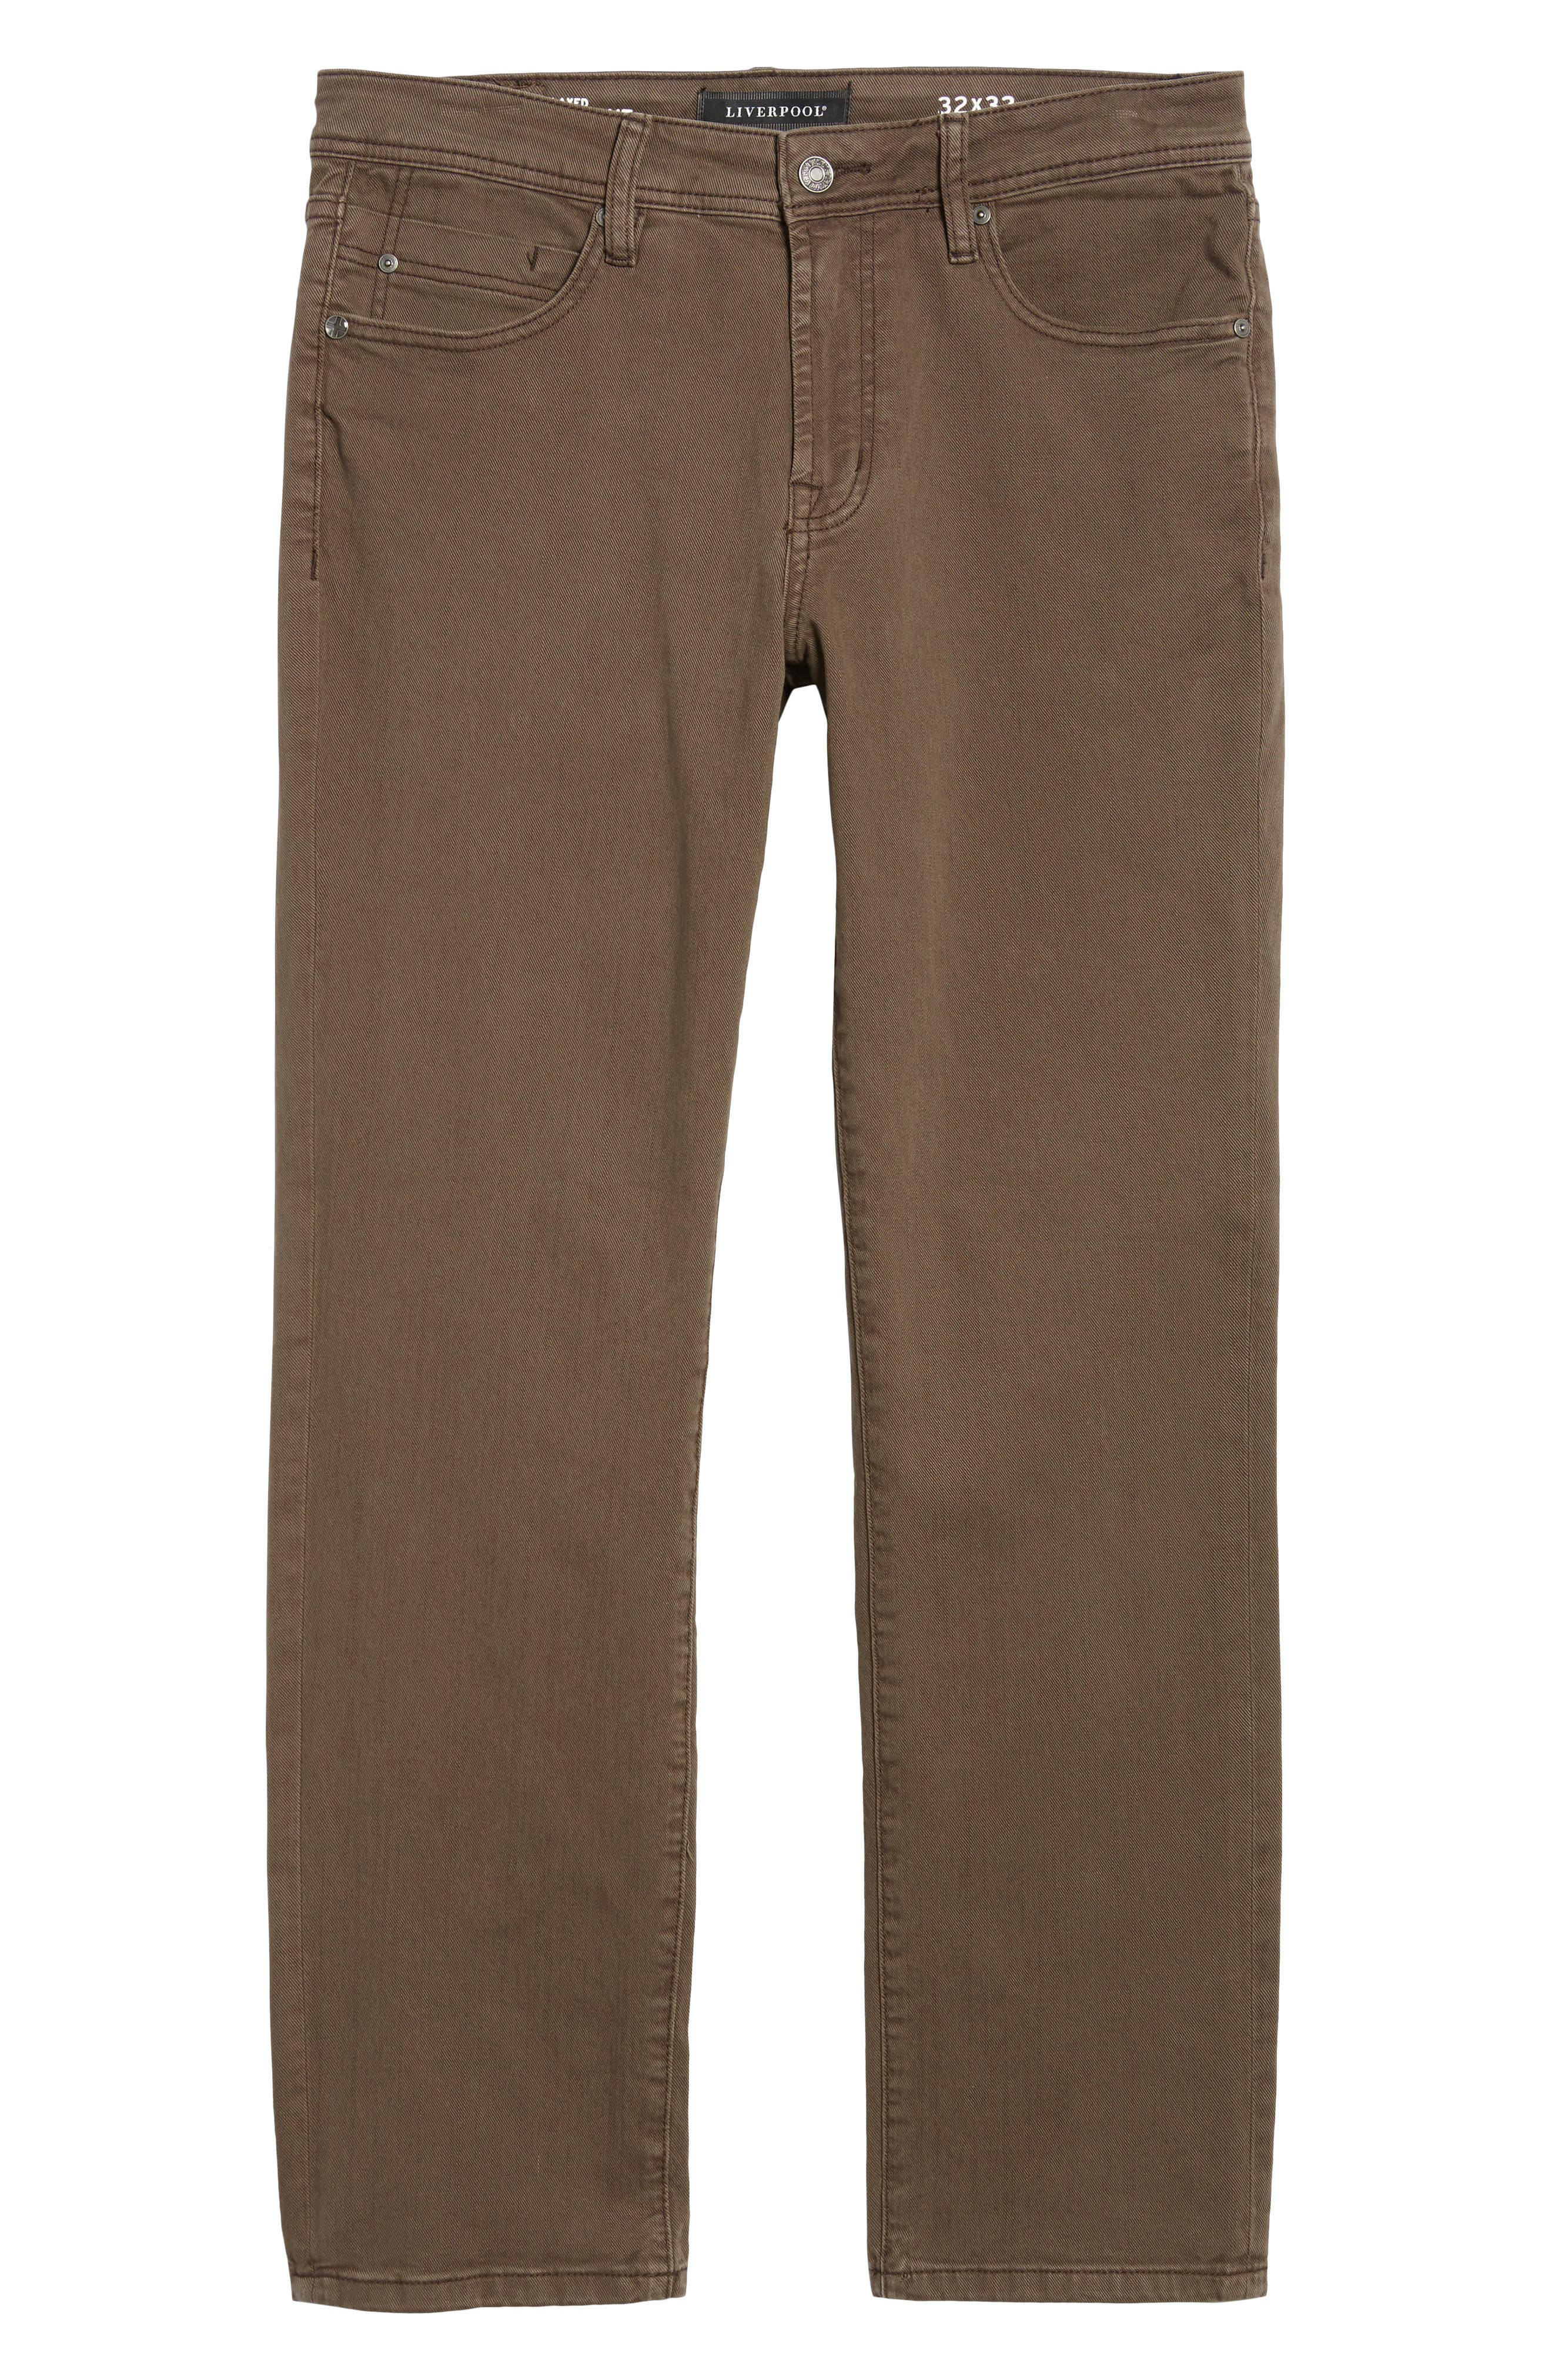 Jeans Co. Regent Relaxed Fit Jeans,                             Alternate thumbnail 6, color,                             Tobacco Leaf